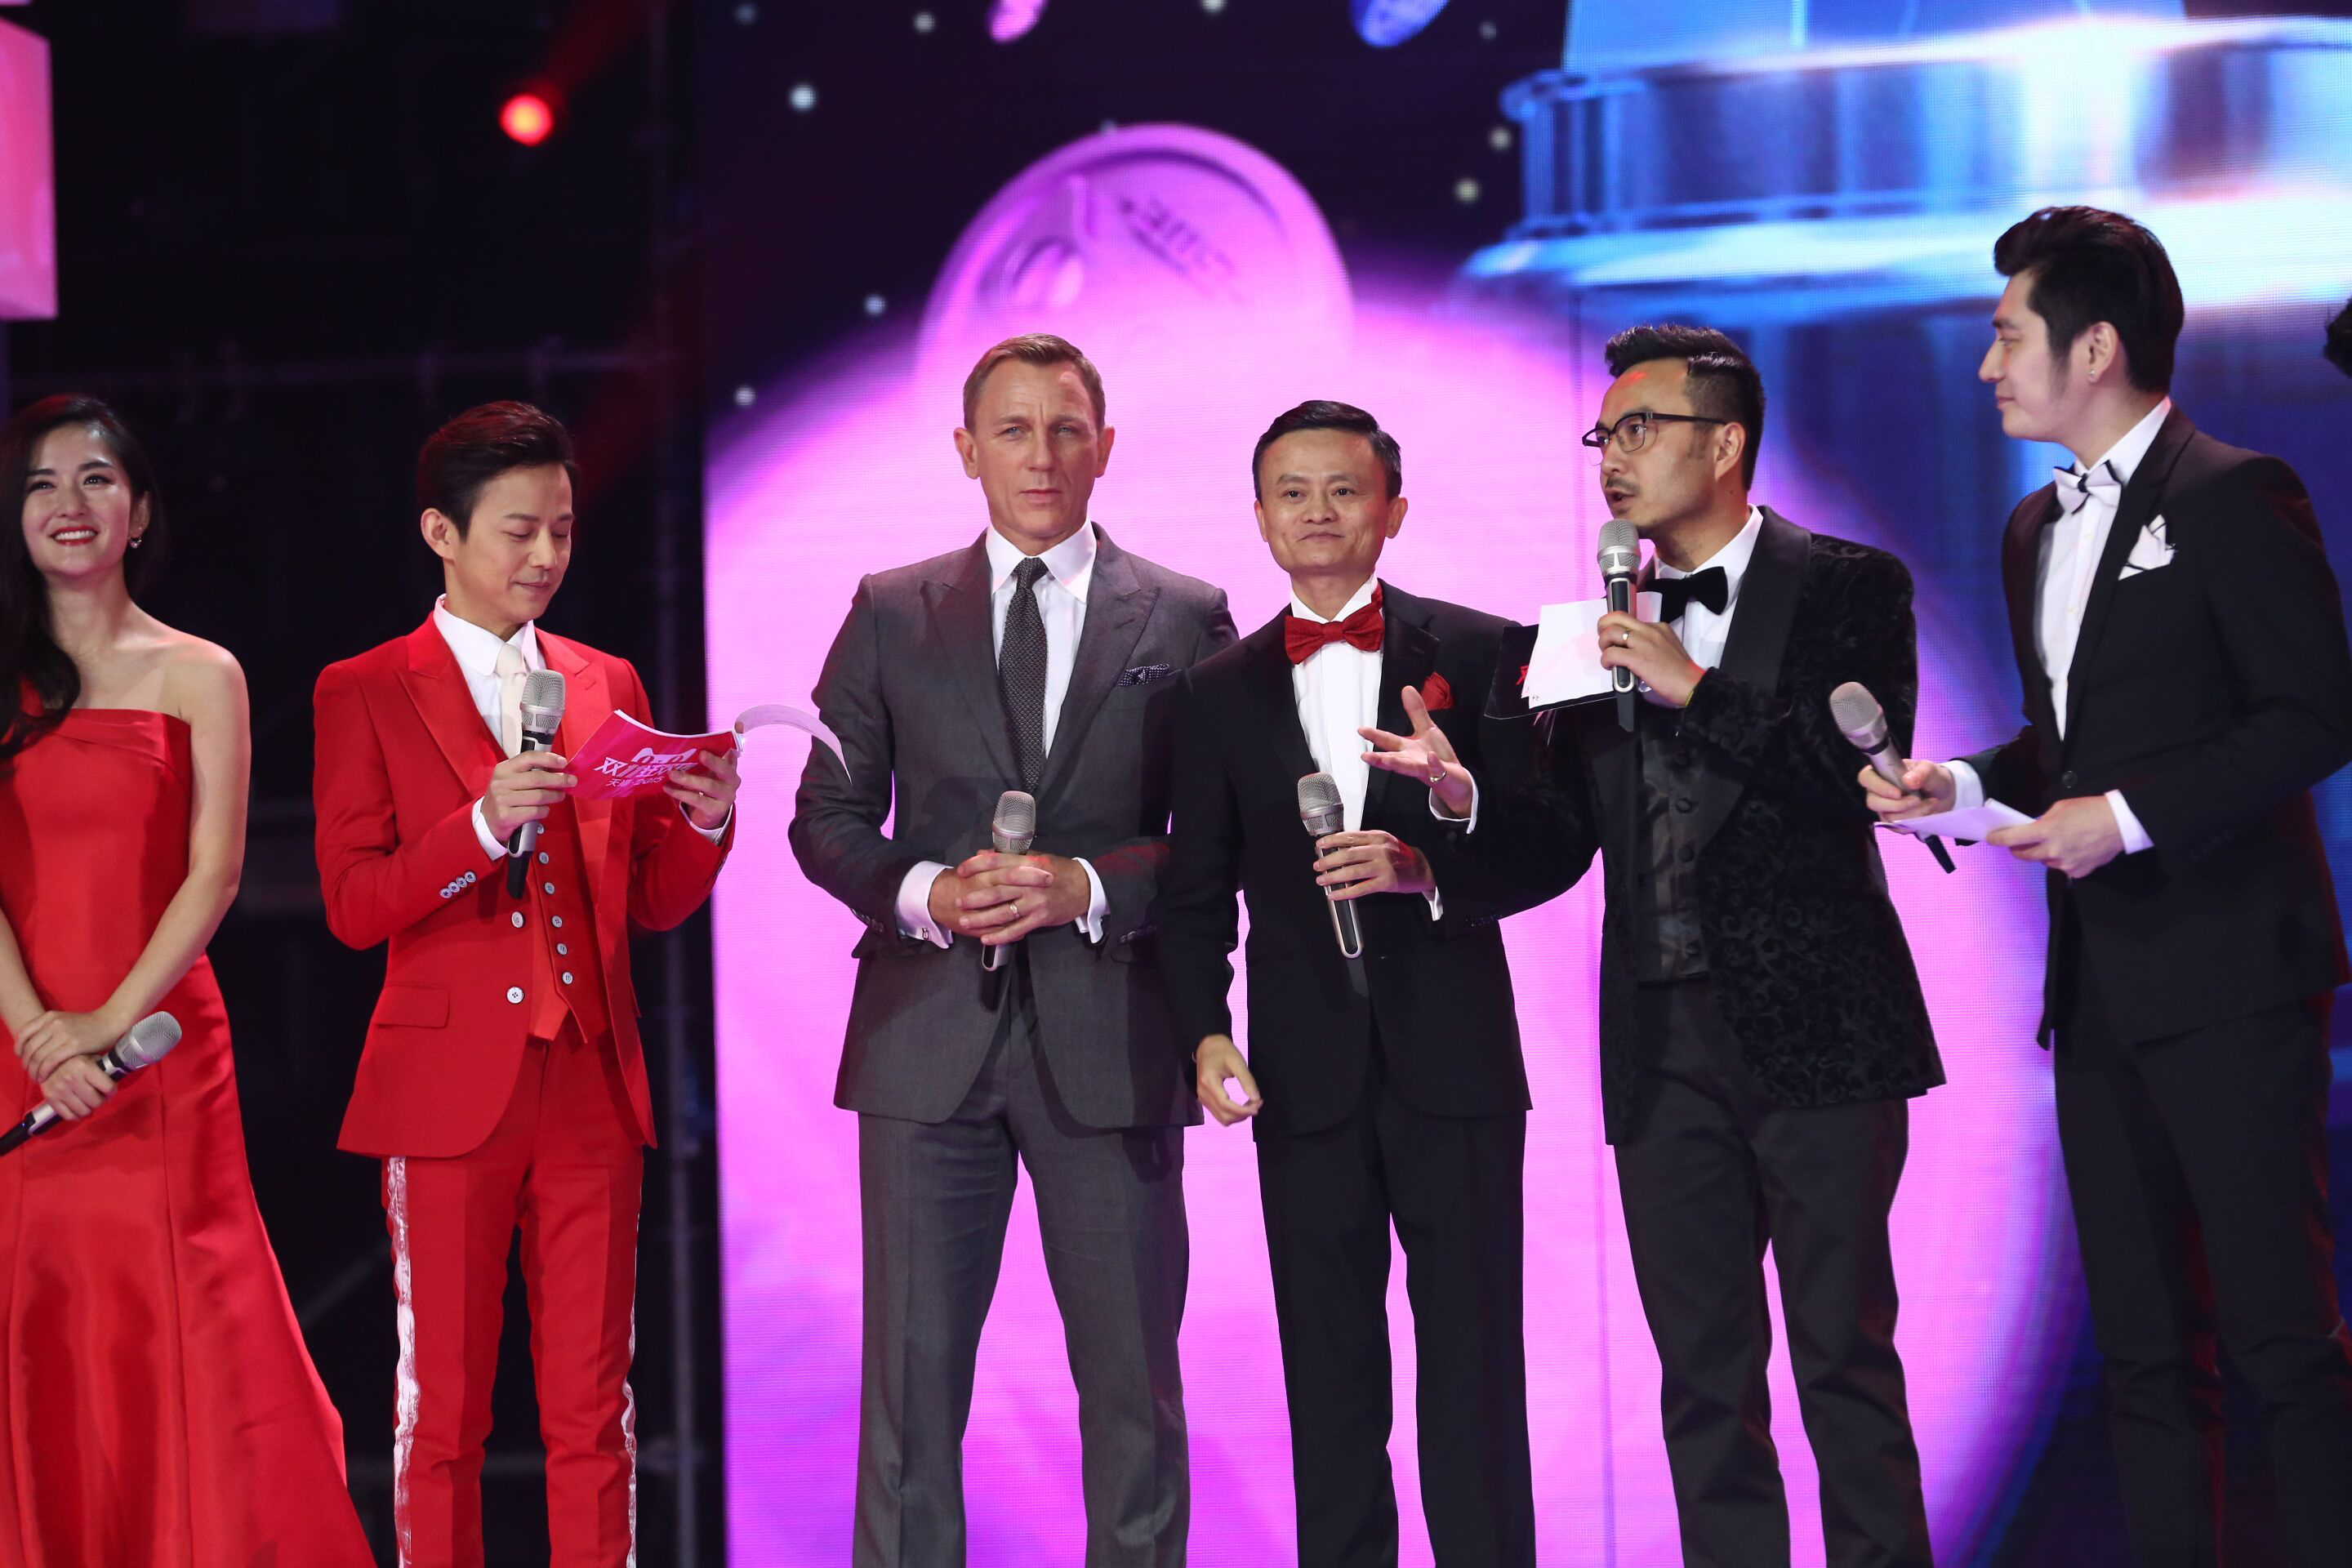 """BEIJING, CHINA - NOVEMBER 10: (CHINA OUT) British actor Daniel Craig (L3) and Alibaba Chairman Jack Ma (R3) attend the ceremony of 2015 Tmall 11.11 Global Shopping Festival at the Water Cube on November 10, 2015 in Beijing, China. Alibaba Group and Hunan television held a ceremony at the Water Cube (aka National Aquatics Center) for the 2015 Tmall 11.11 Global Shopping Festival which attracted consumers to shop on Tmall.com with discounts on November 11 which was also called the """"Singles Day"""". (Photo by ChinaFotoPress)***_***"""